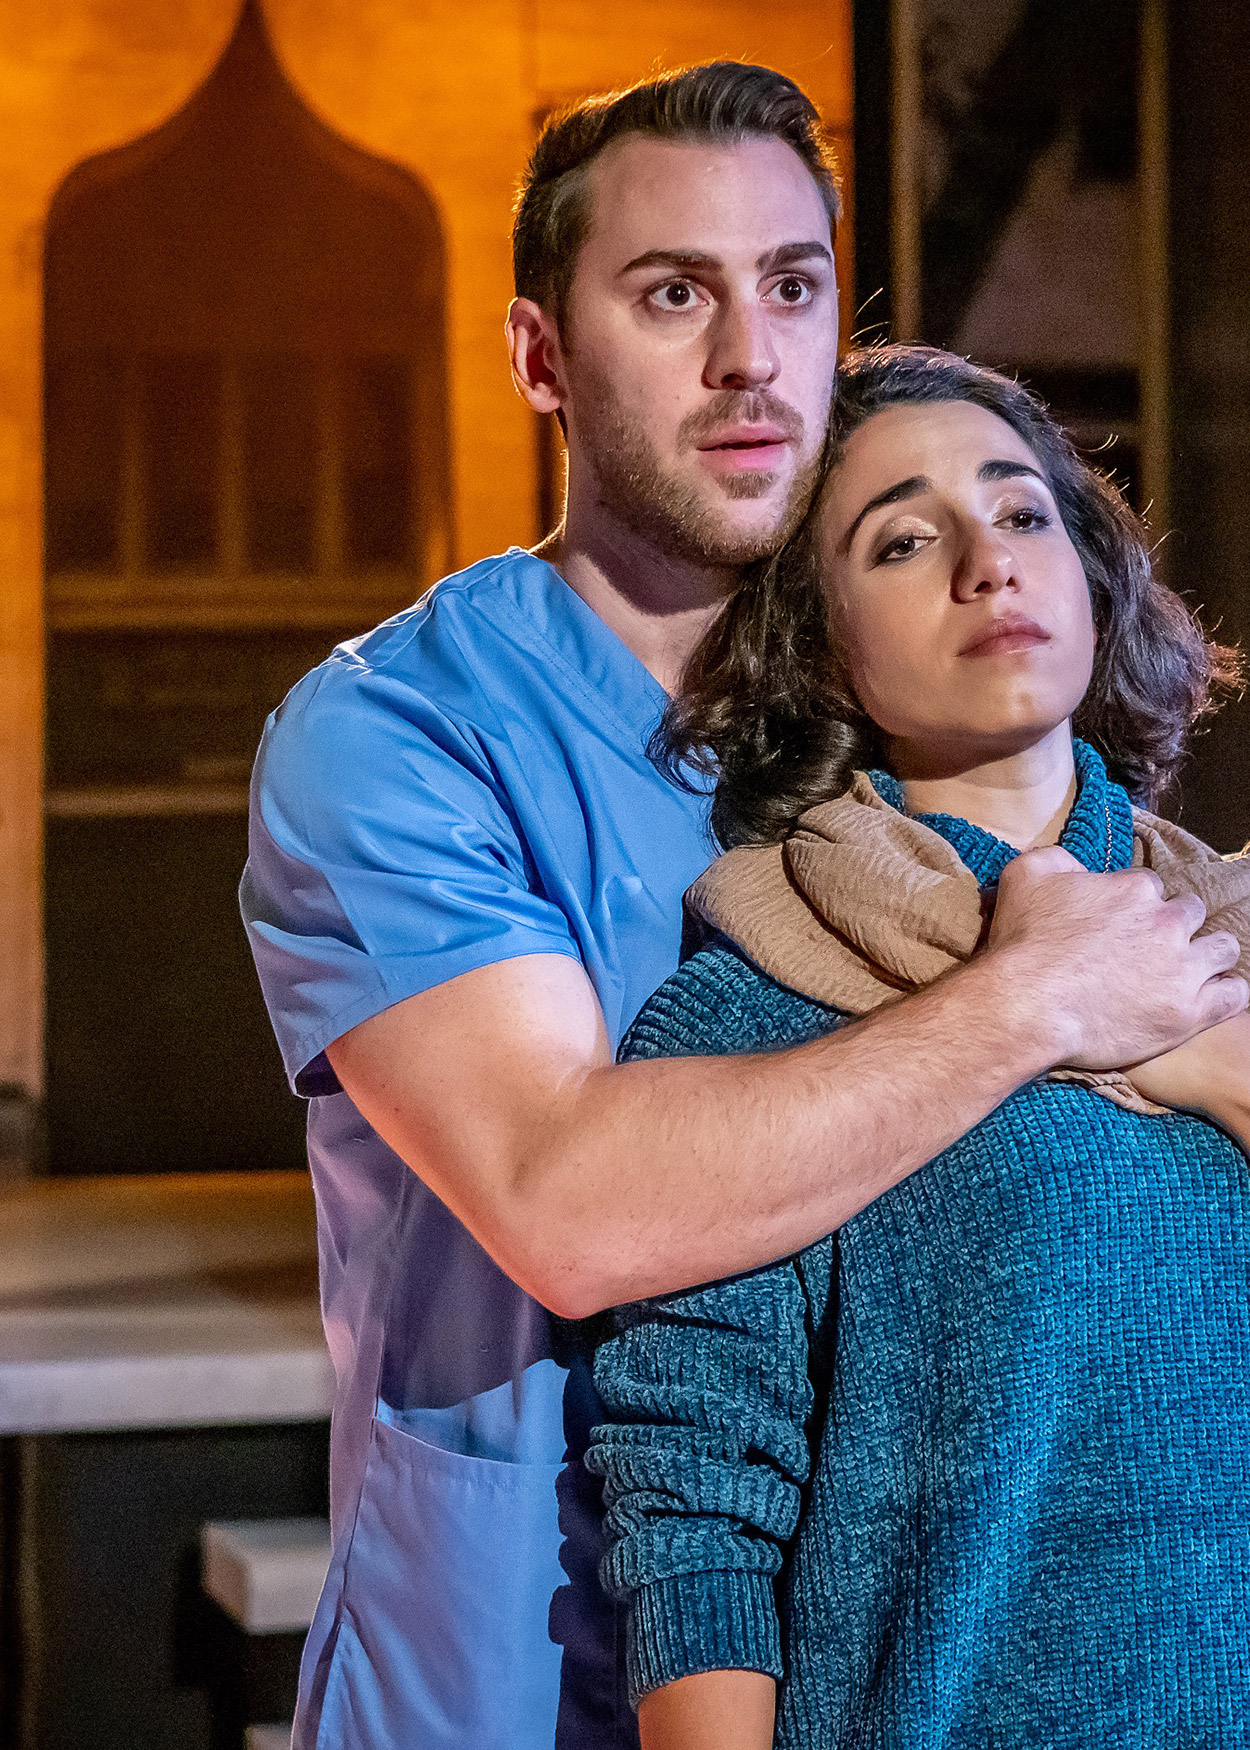 Production Photo from Yasmina's Necklace (2019). A man wearing a blue t-shirt stands behind a woman wearing a blue sweater, embracing her.